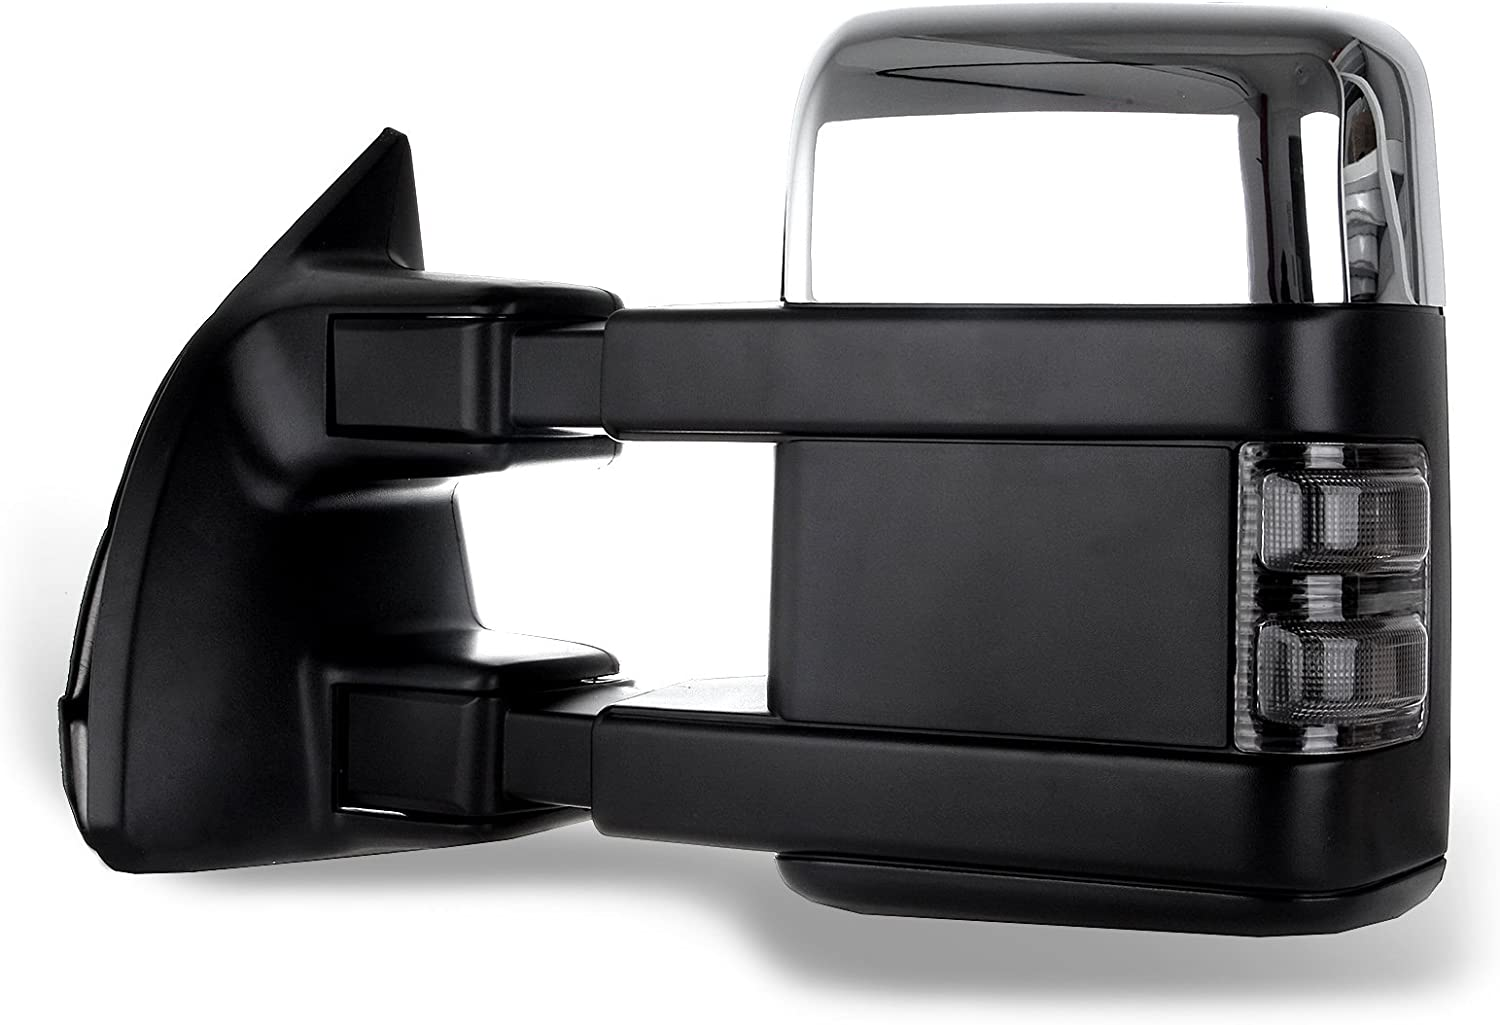 Heated Turn Signal Manual Extending Folding SCITOO fit Ford Towing Mirrors Chrome Rear View Mirrors fit 2008-2016 Ford F250 F350 F450 F550 Super Duty Truck Larger Glass Power Control